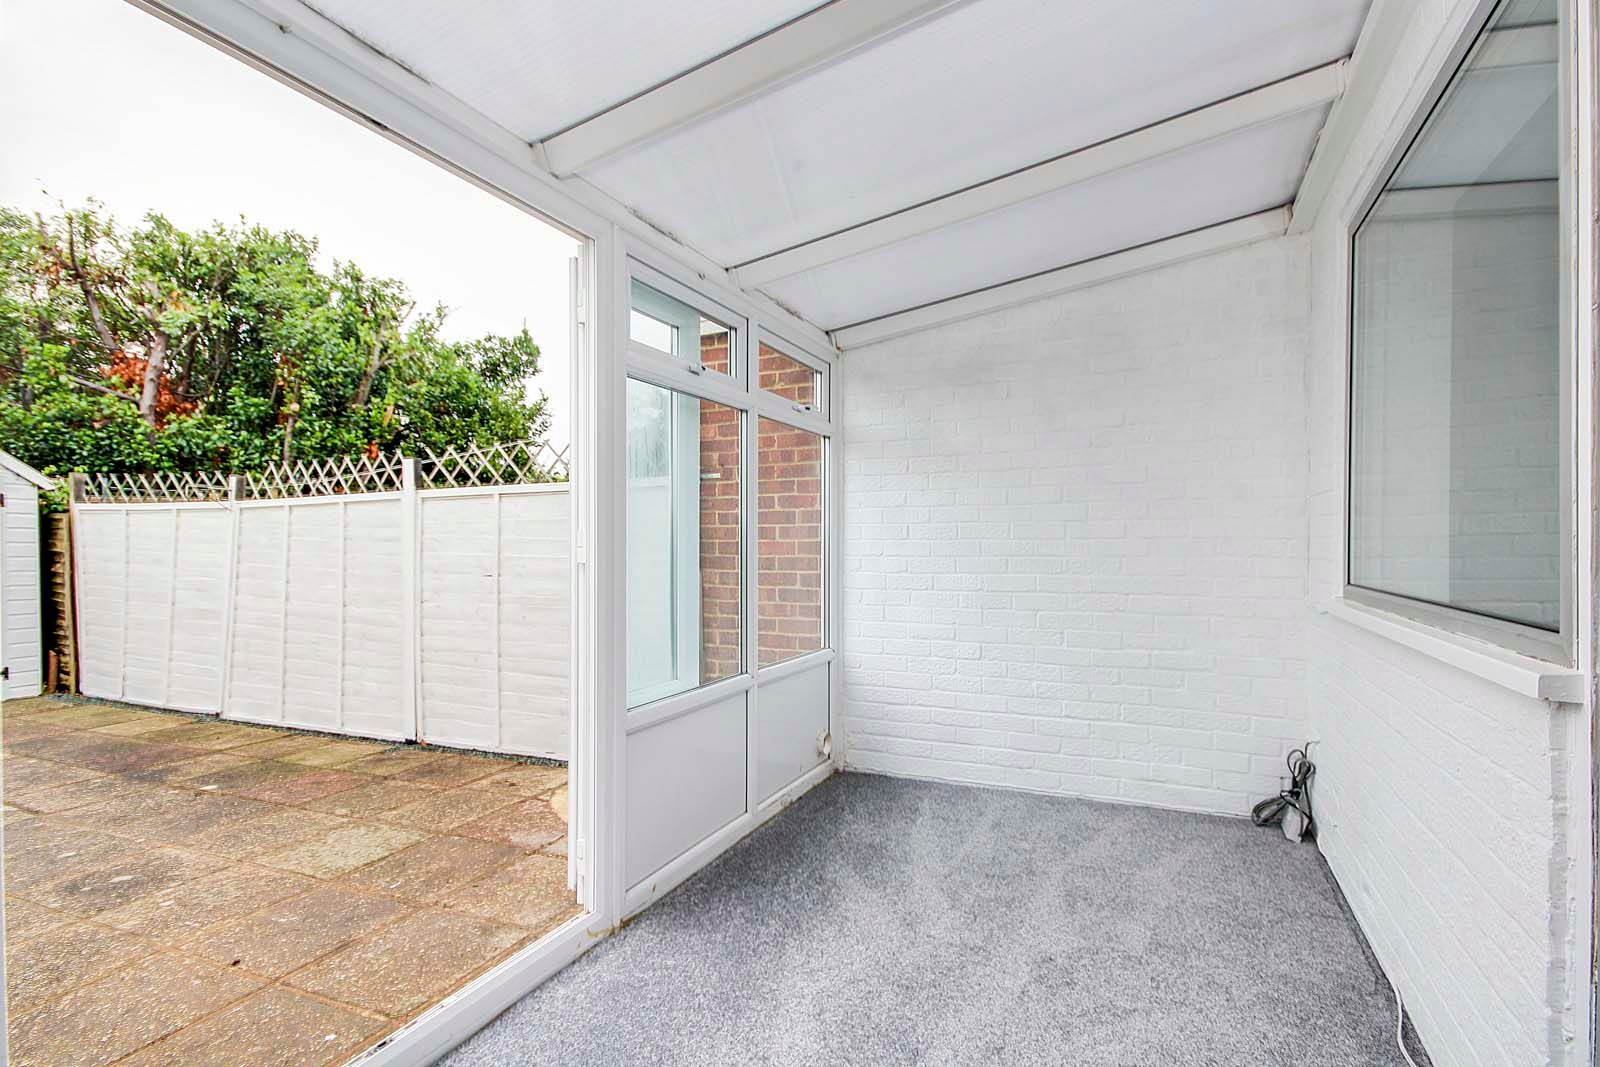 2 bed house for sale in Church Way COMP Jan 2019  - Property Image 6